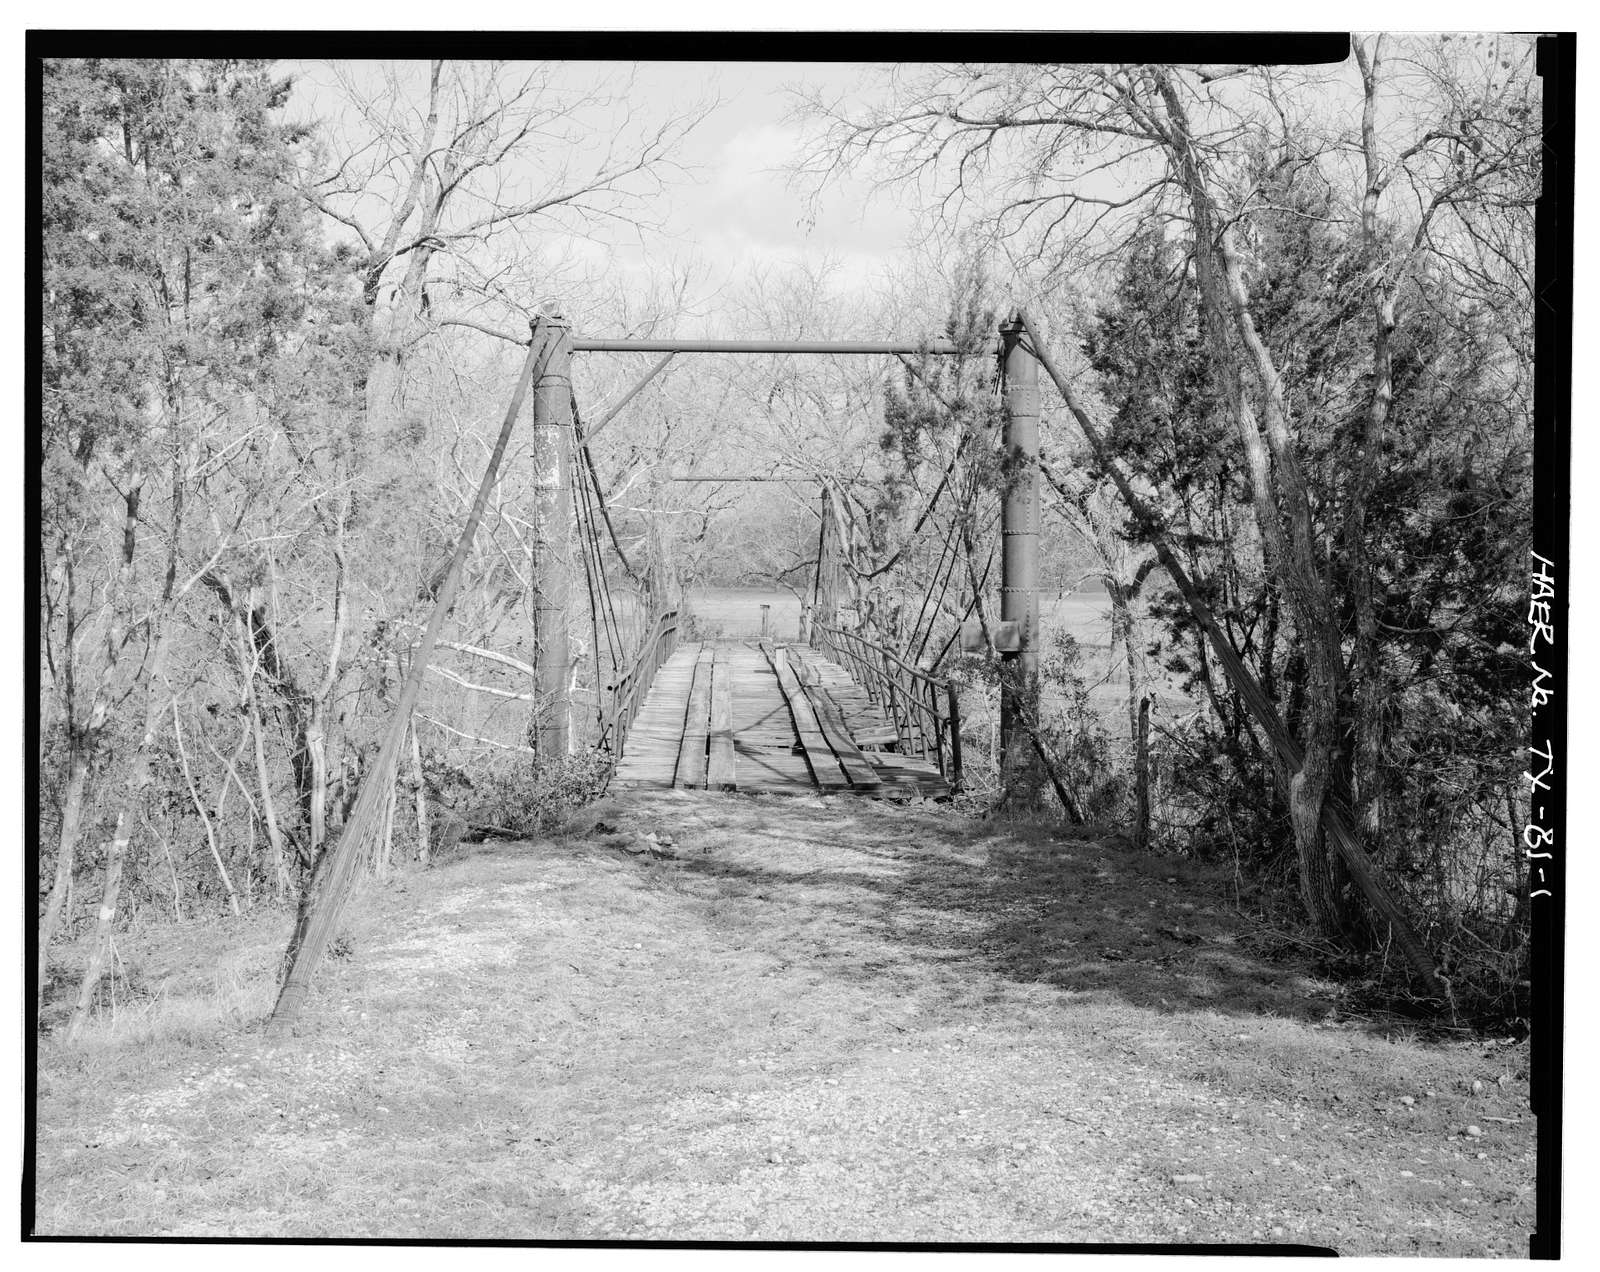 Rock Church Suspension Bridge, Spanning Paluxy River, Tolar, Hood County, TX